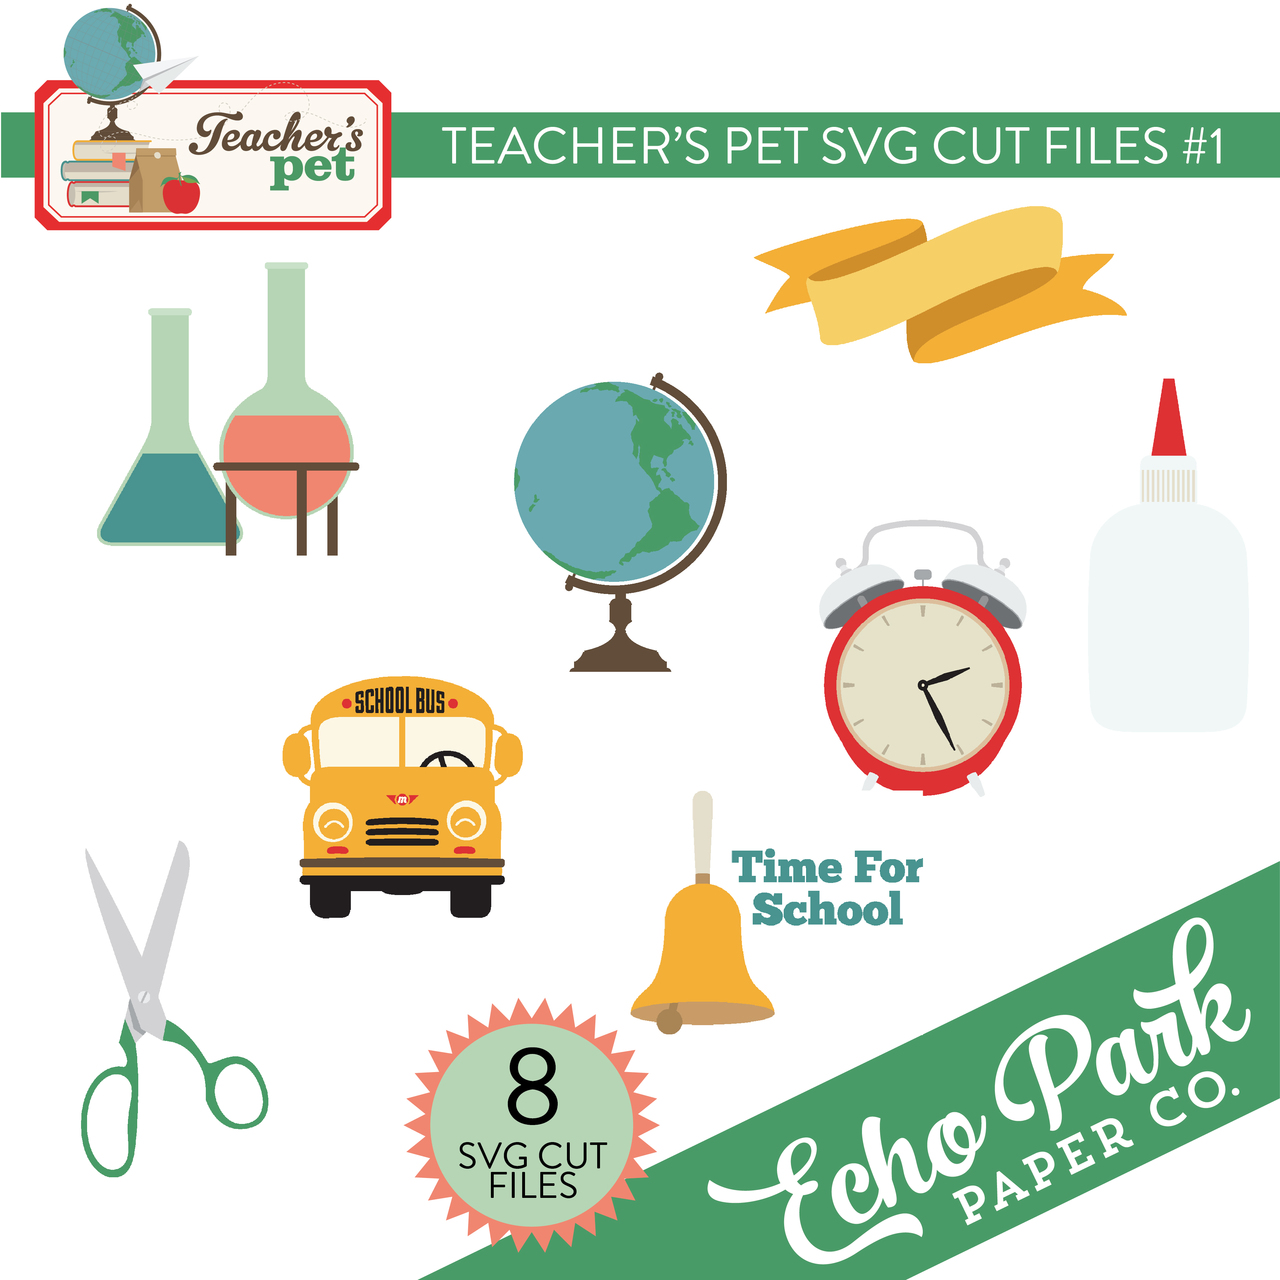 Teacher's Pet SVG Cut Files #1